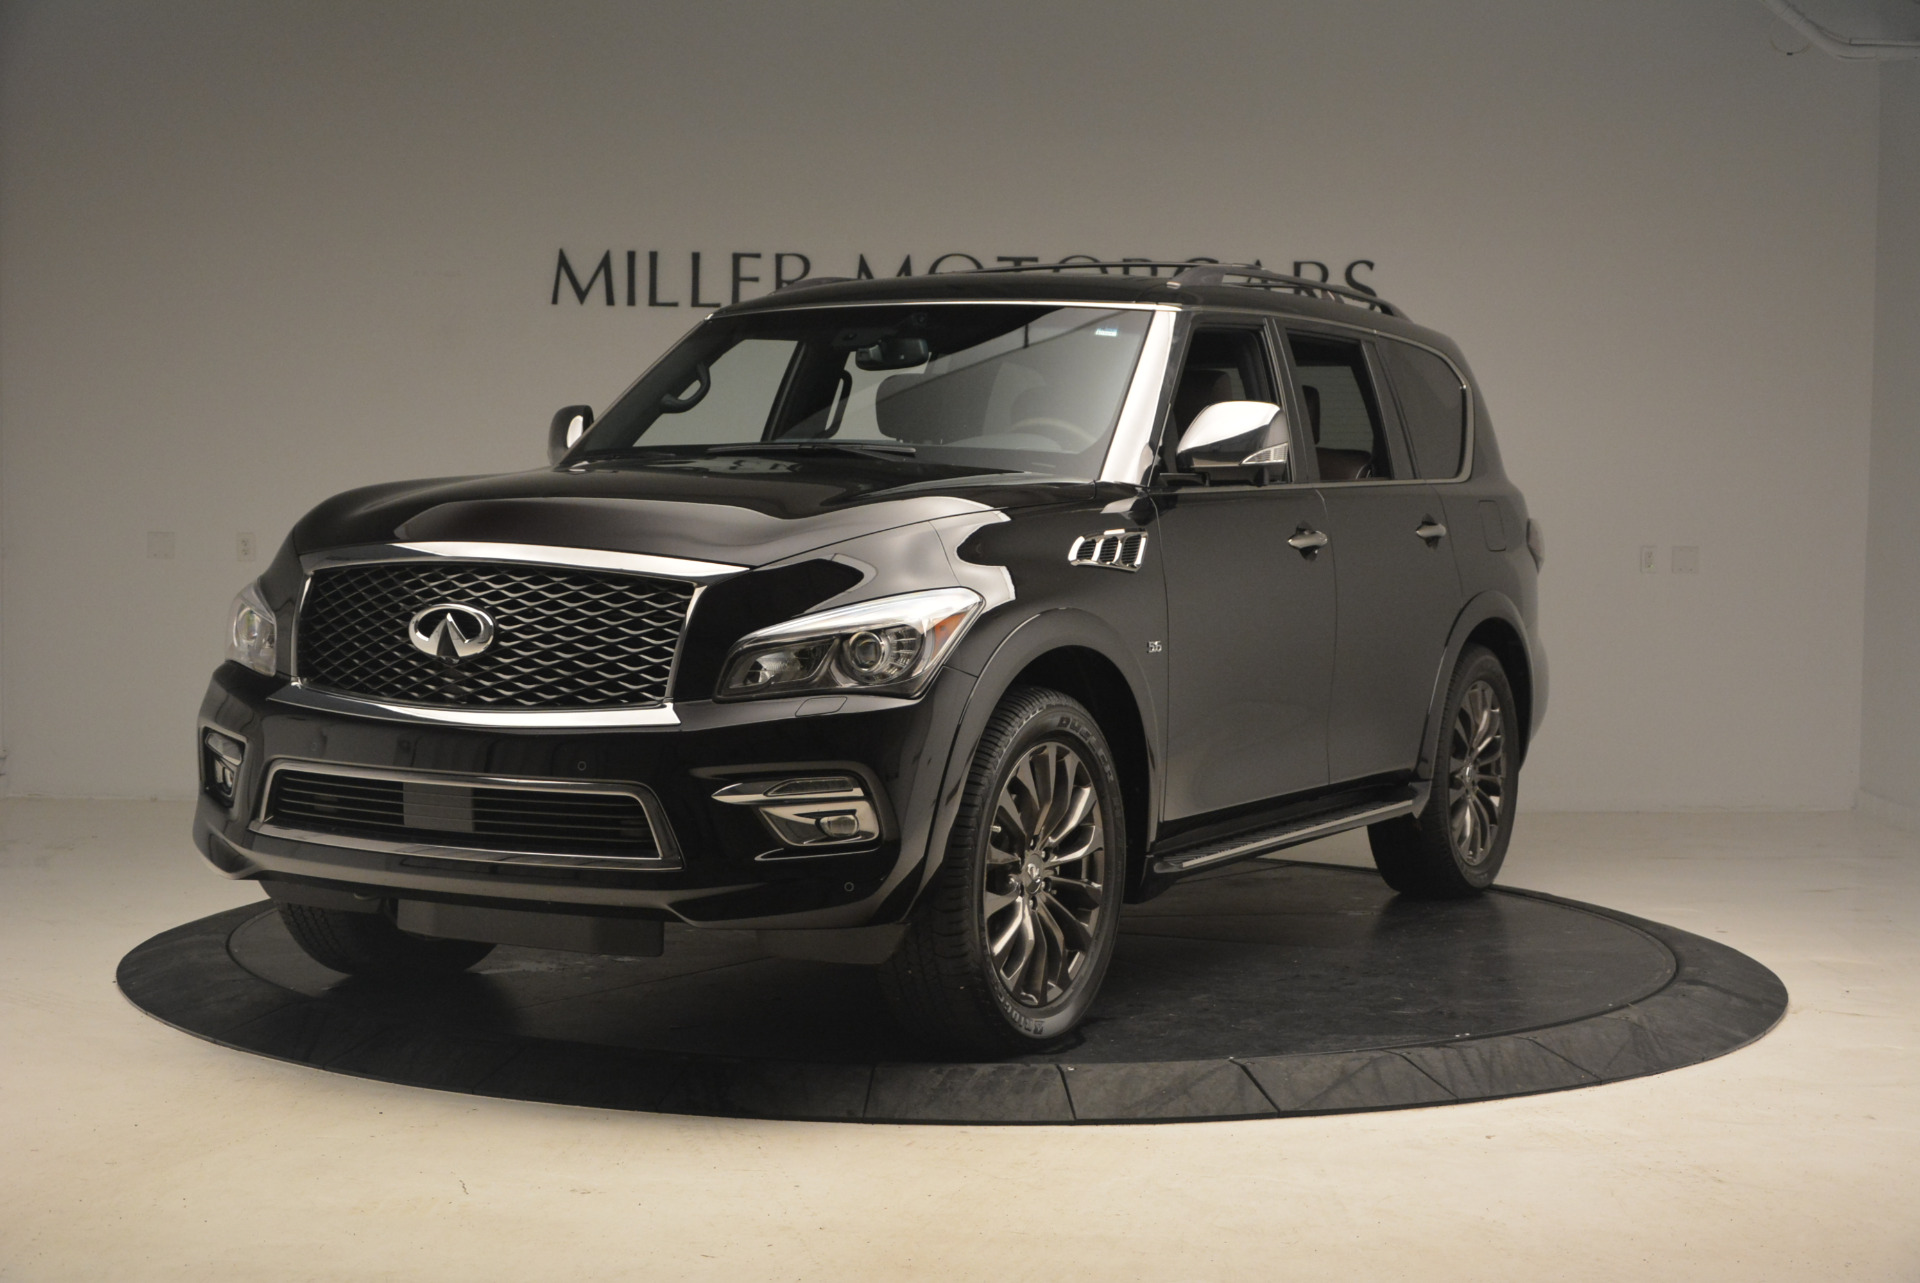 Used 2015 INFINITI QX80 Limited 4WD for sale Sold at Alfa Romeo of Westport in Westport CT 06880 1